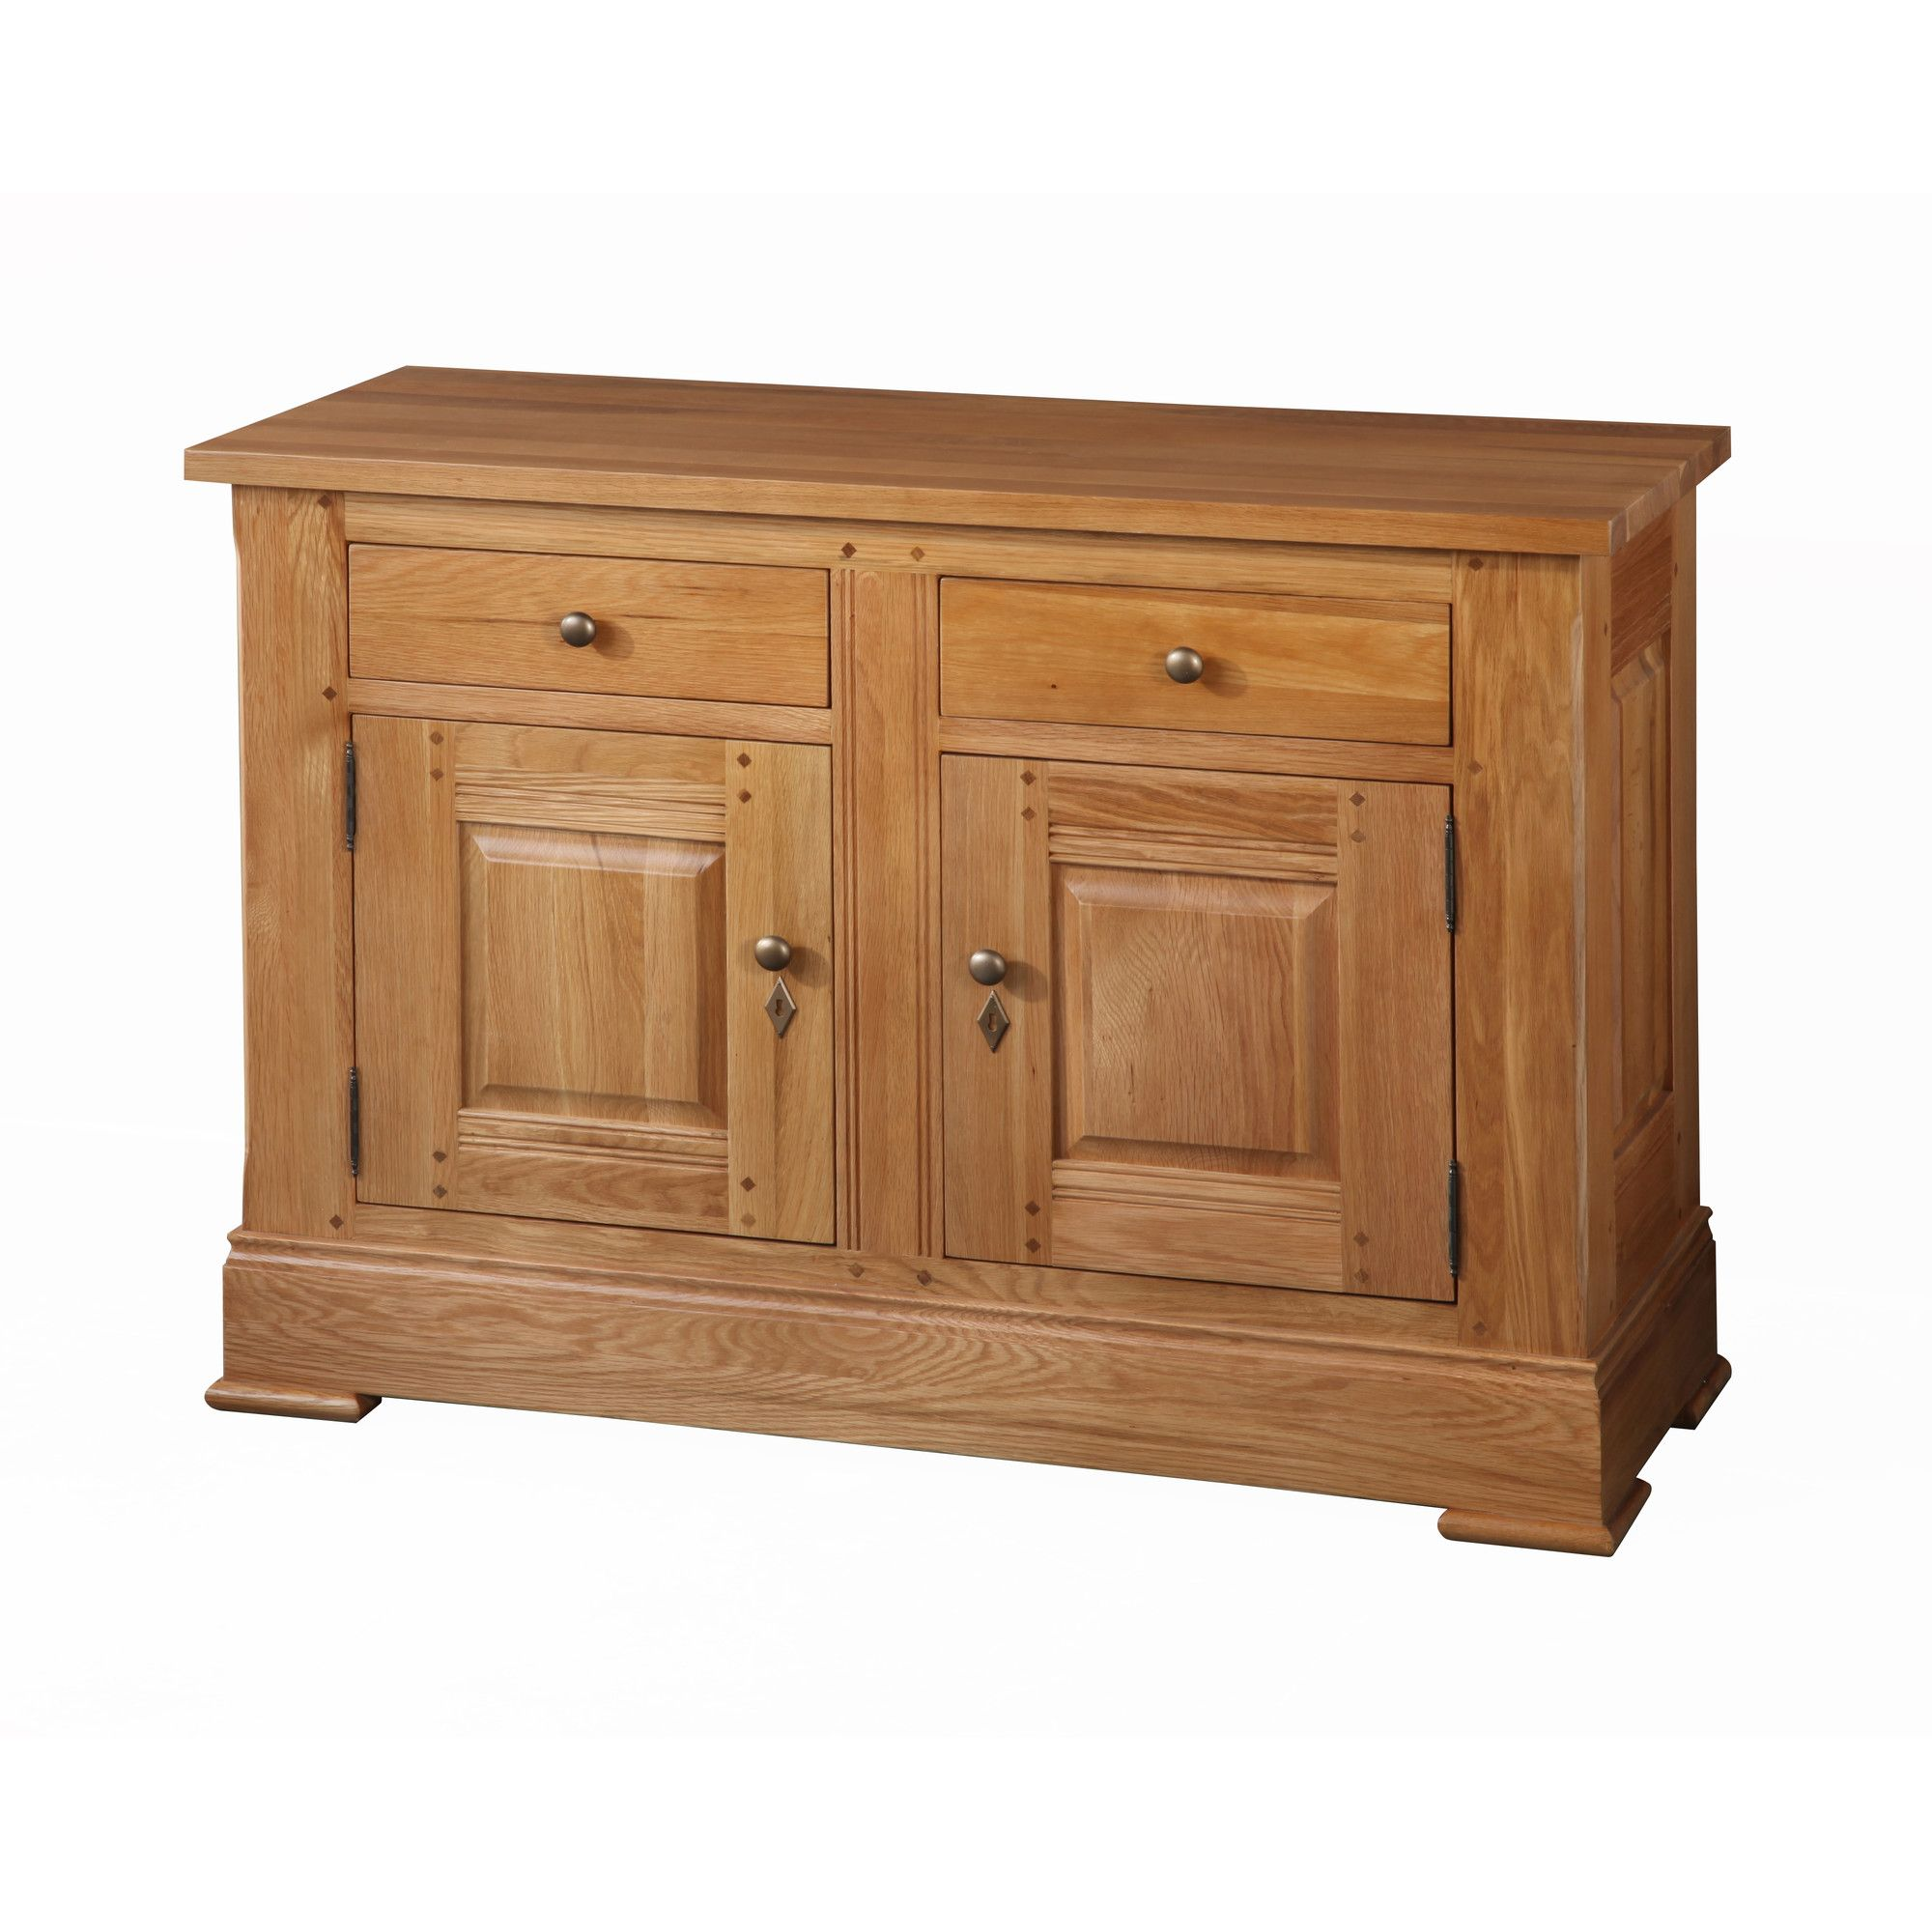 Wilkinson Furniture Normandy Small Sideboard in Lacquer at Tesco Direct